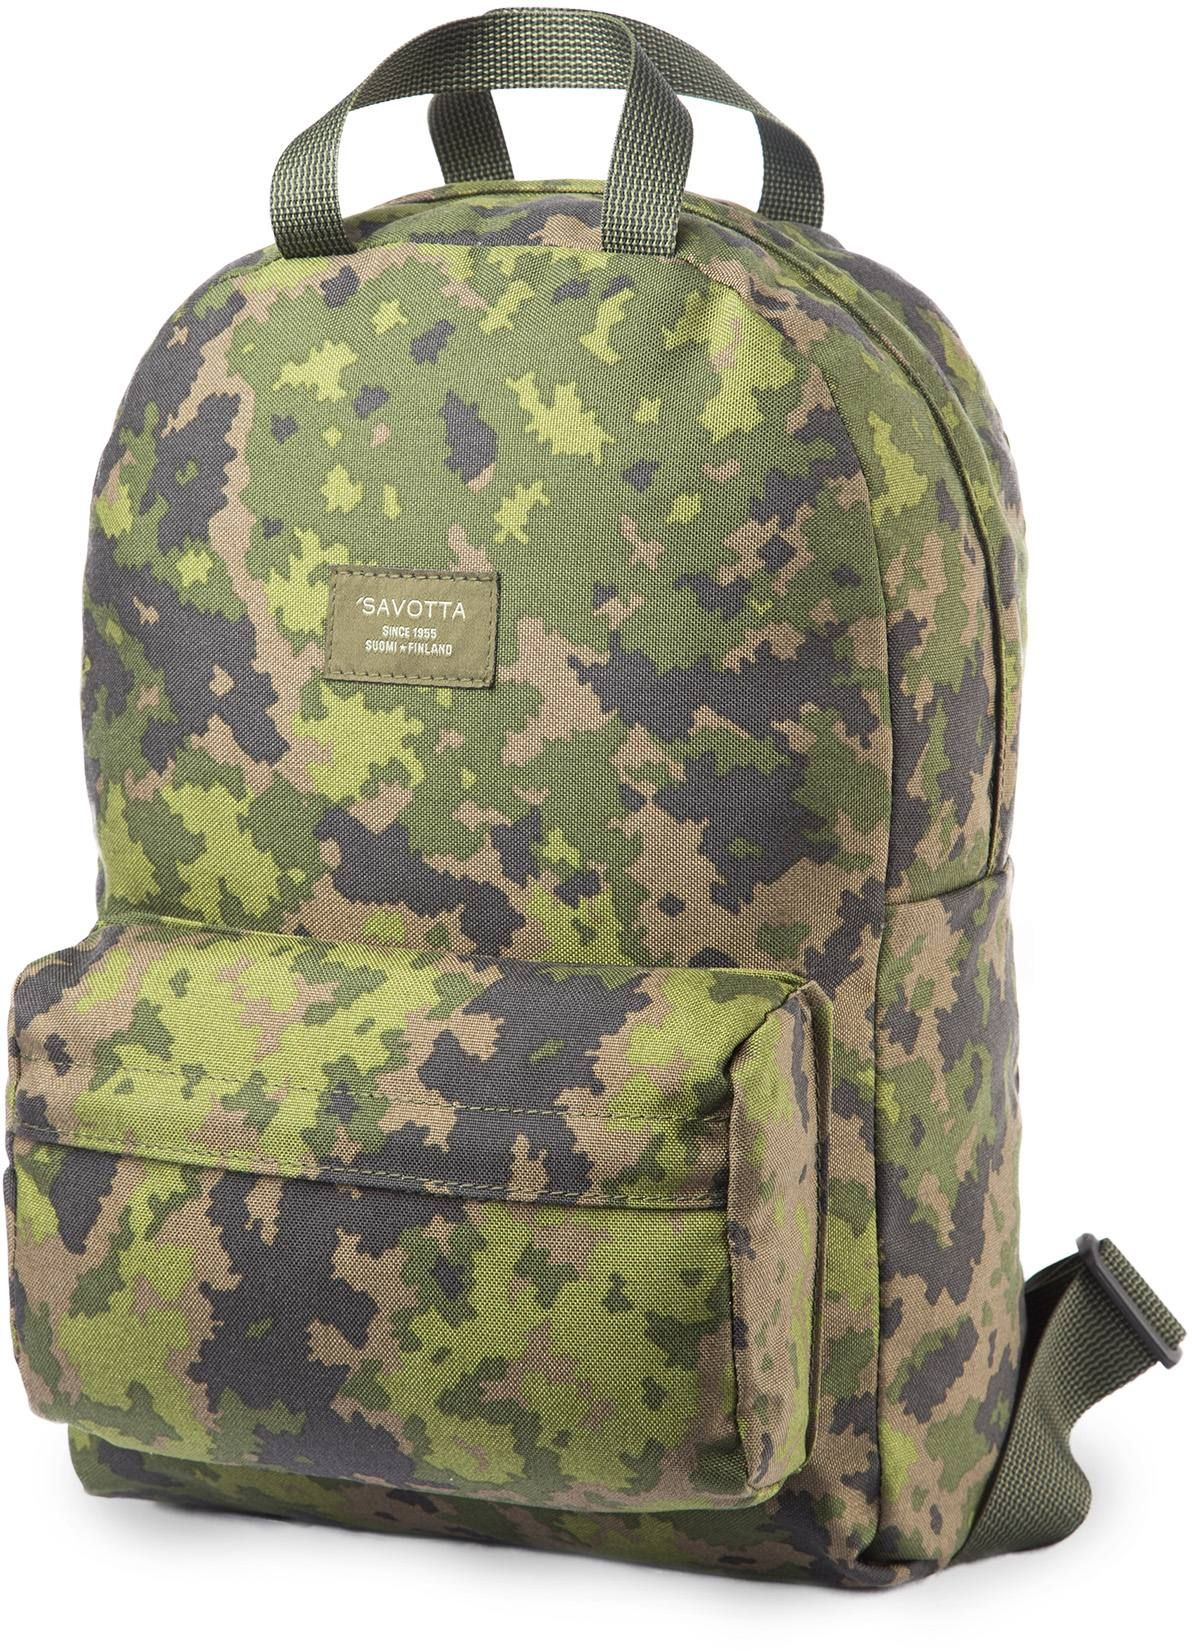 Savotta 202 Camo | Scandinavian Outdoor